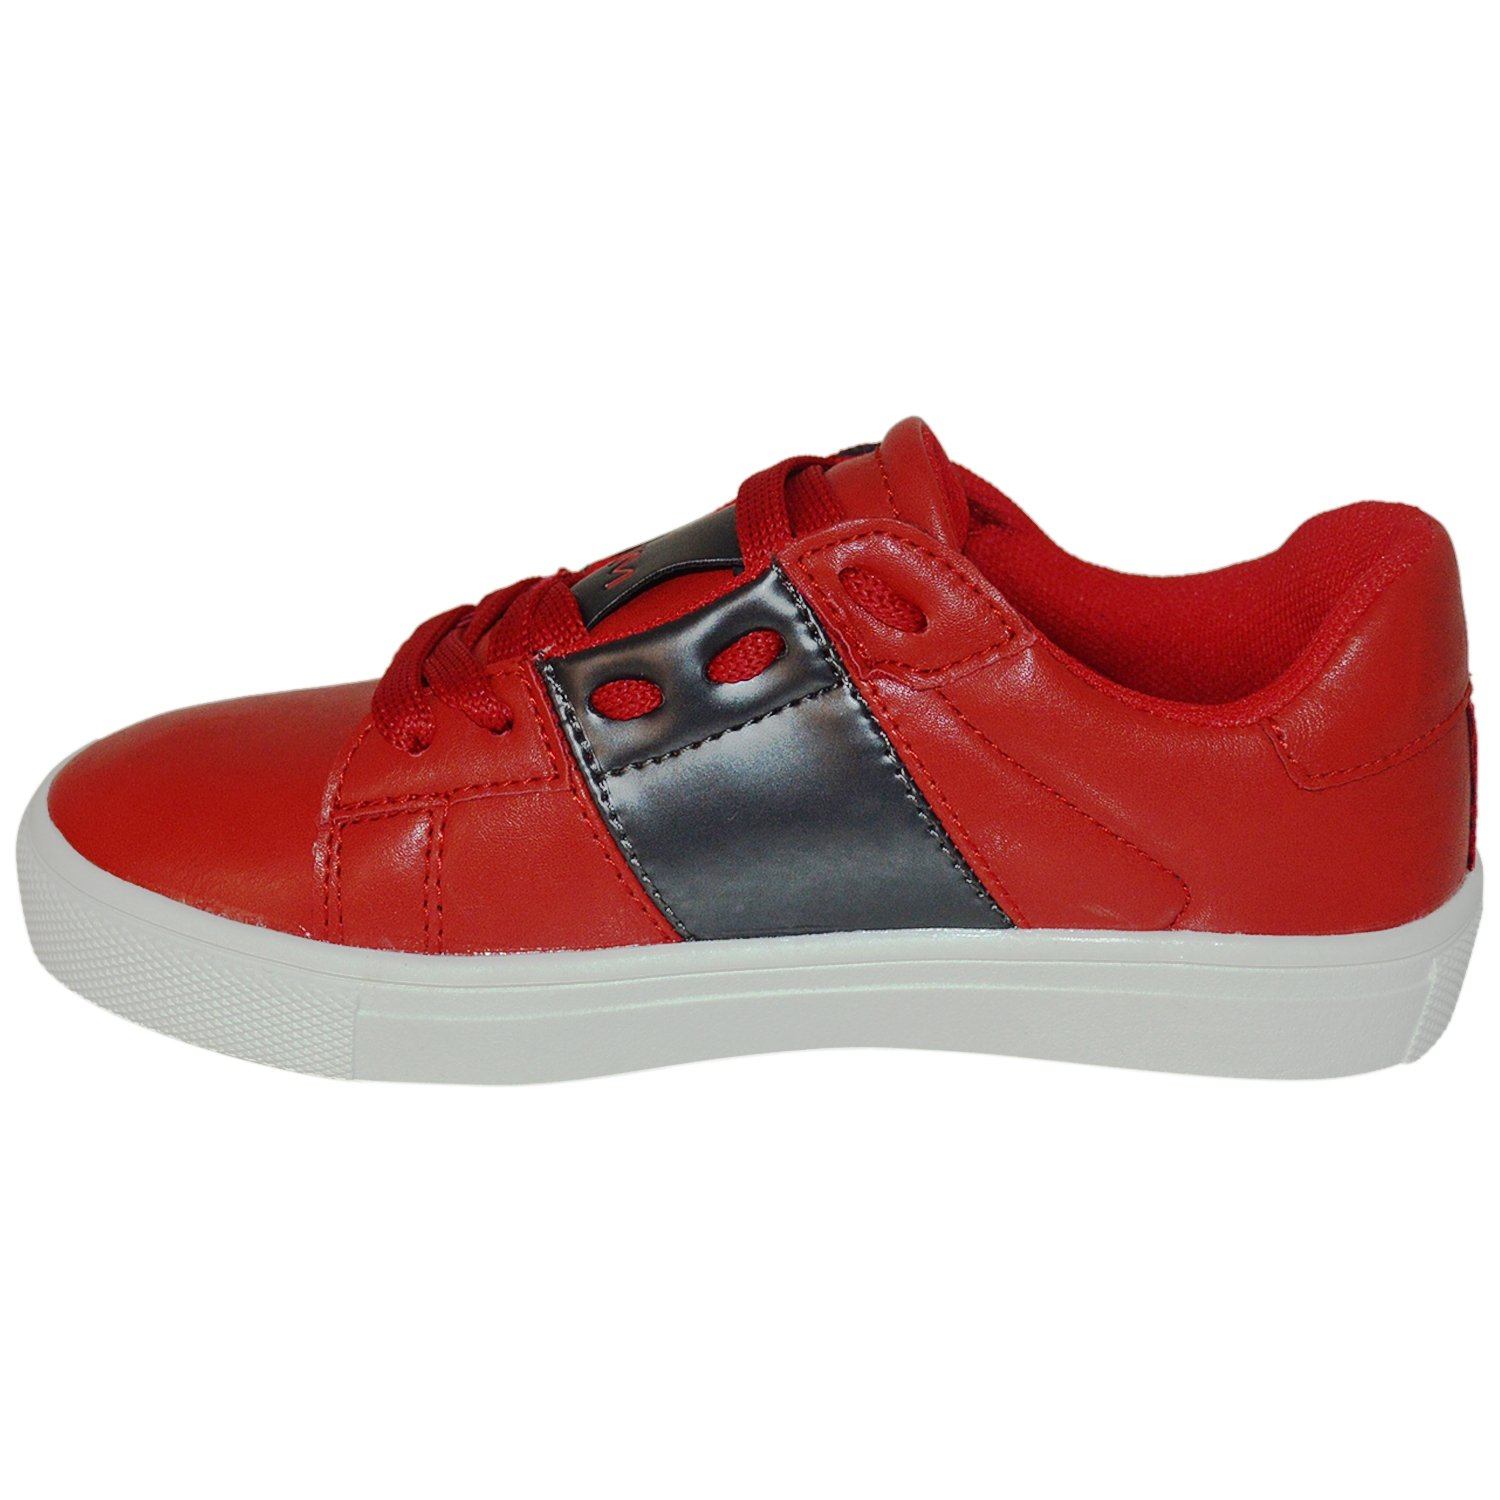 Kids /& Youth Contrast Color Band Fashion Eyelet Lace Shoes RED/_DKGREY